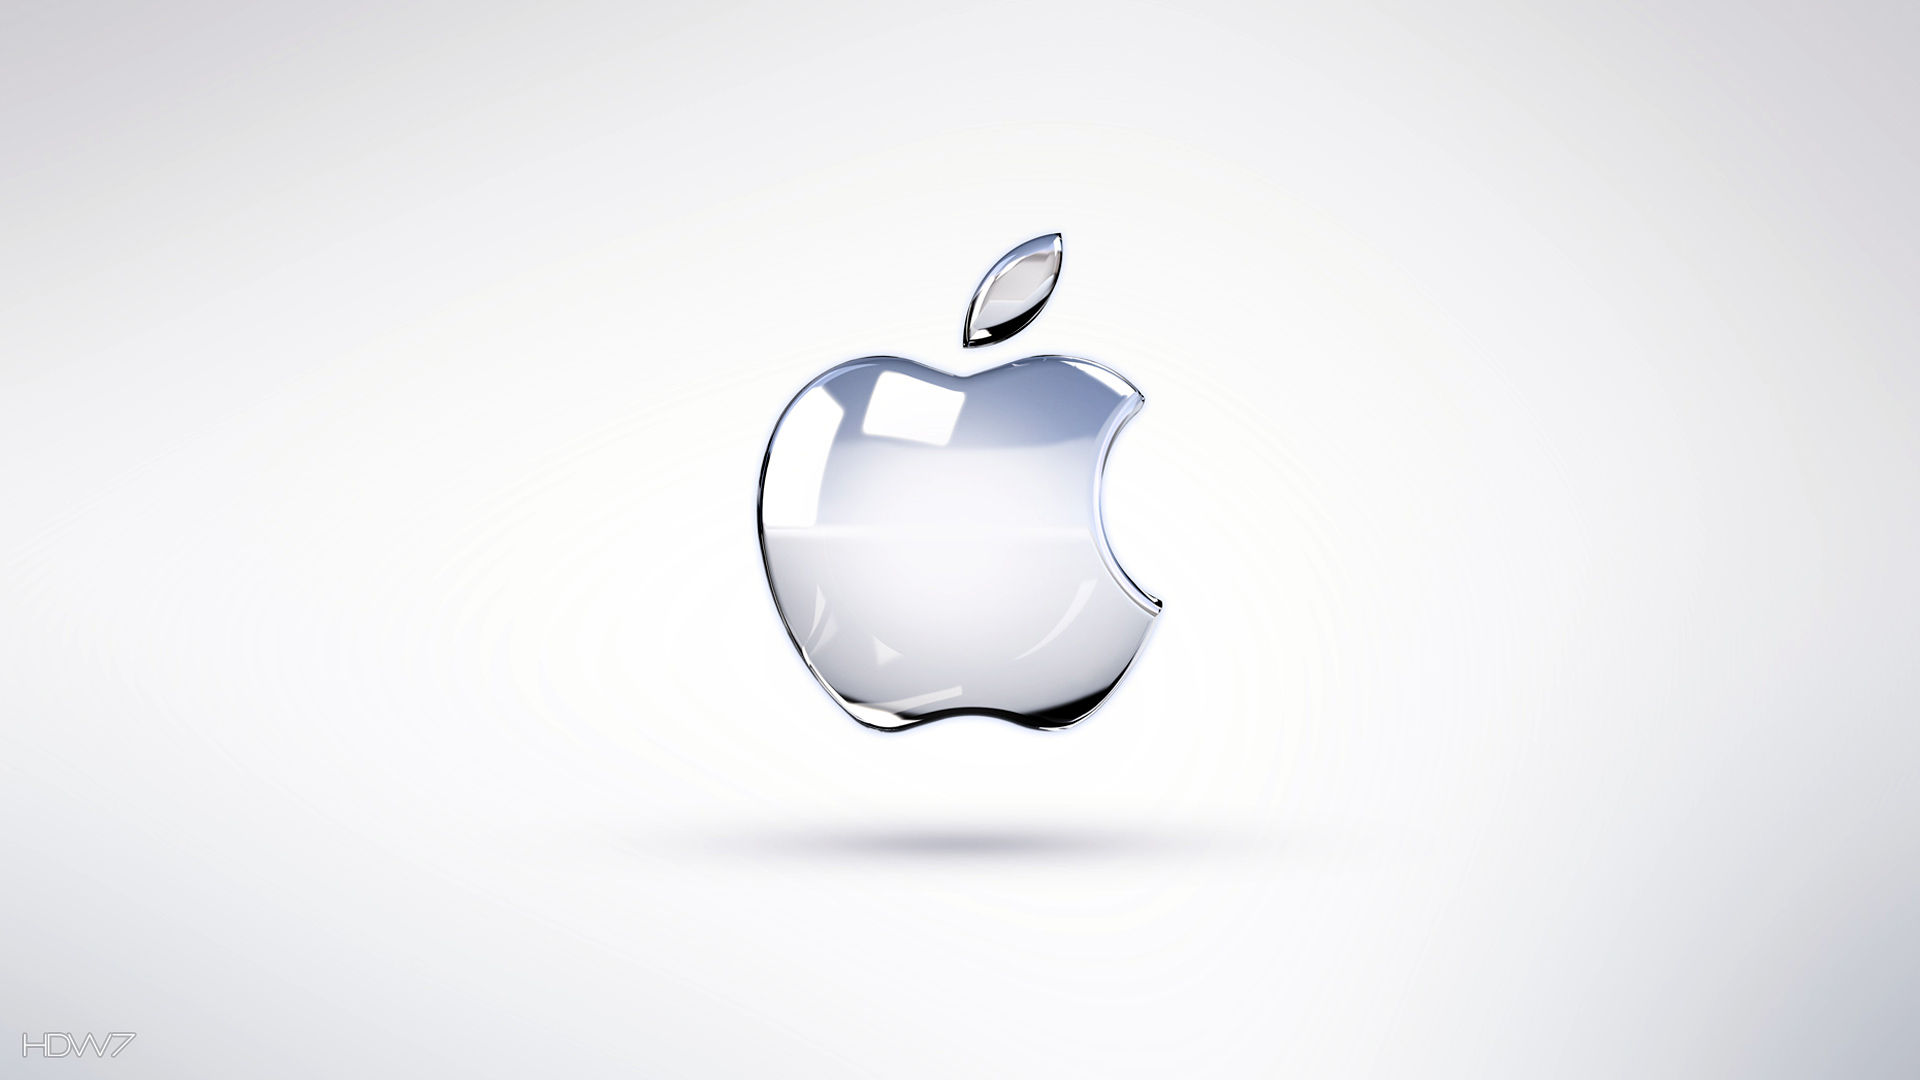 apple logo wallpaper 1920x1080